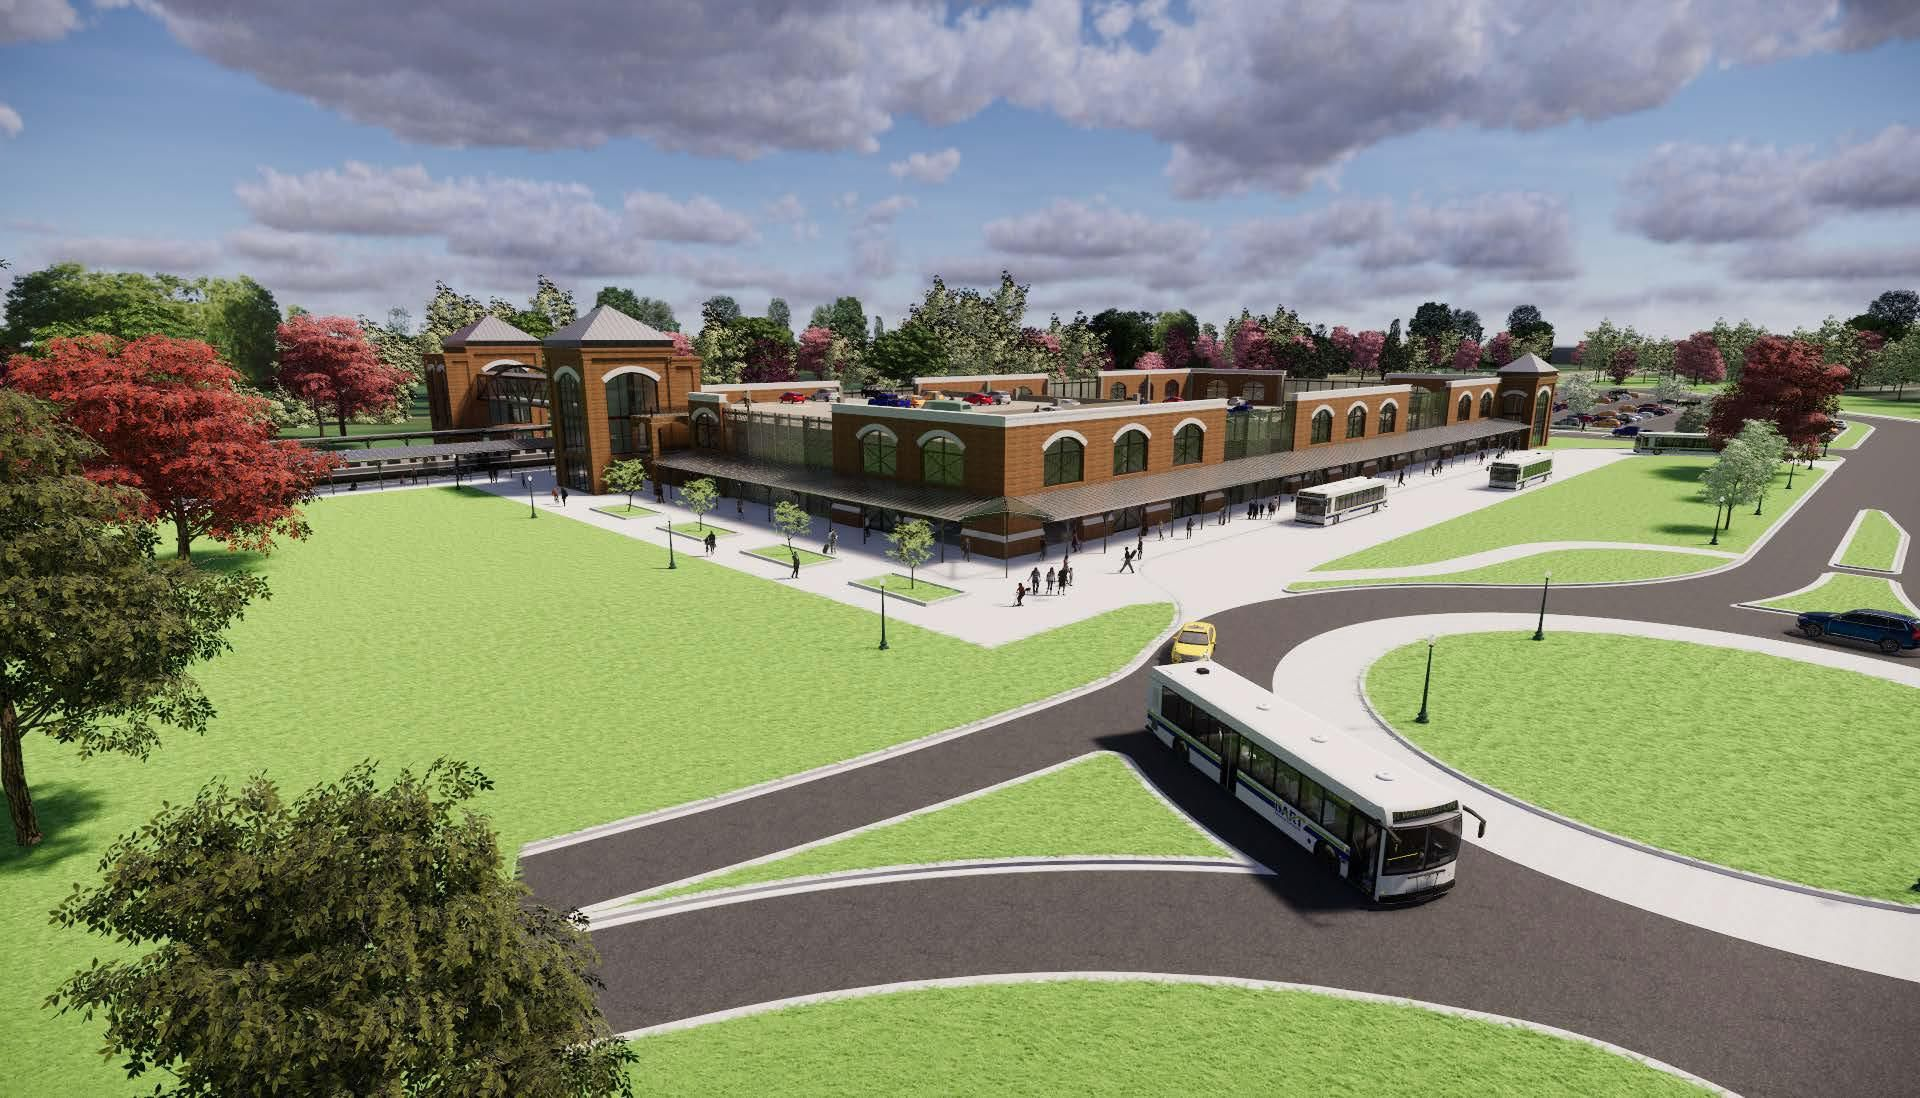 Claymont Train Station rendering Delaware business